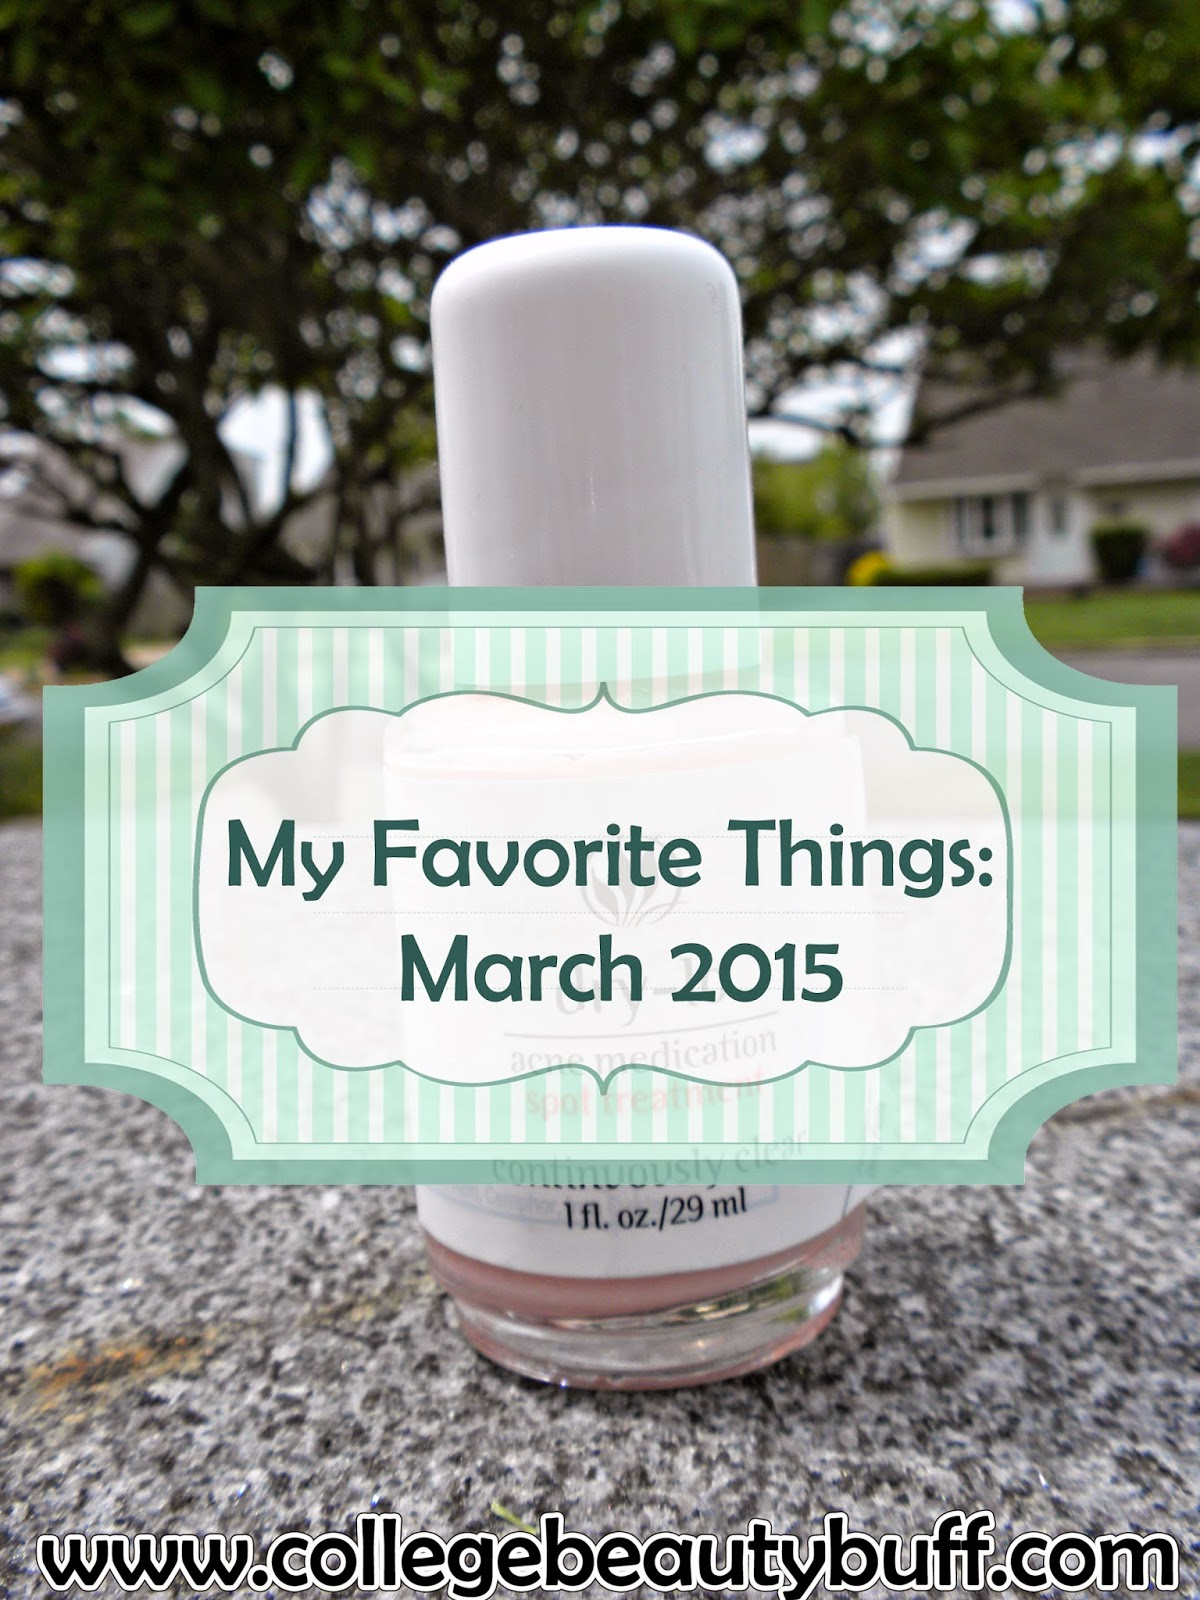 My Favorite Things: March 2015